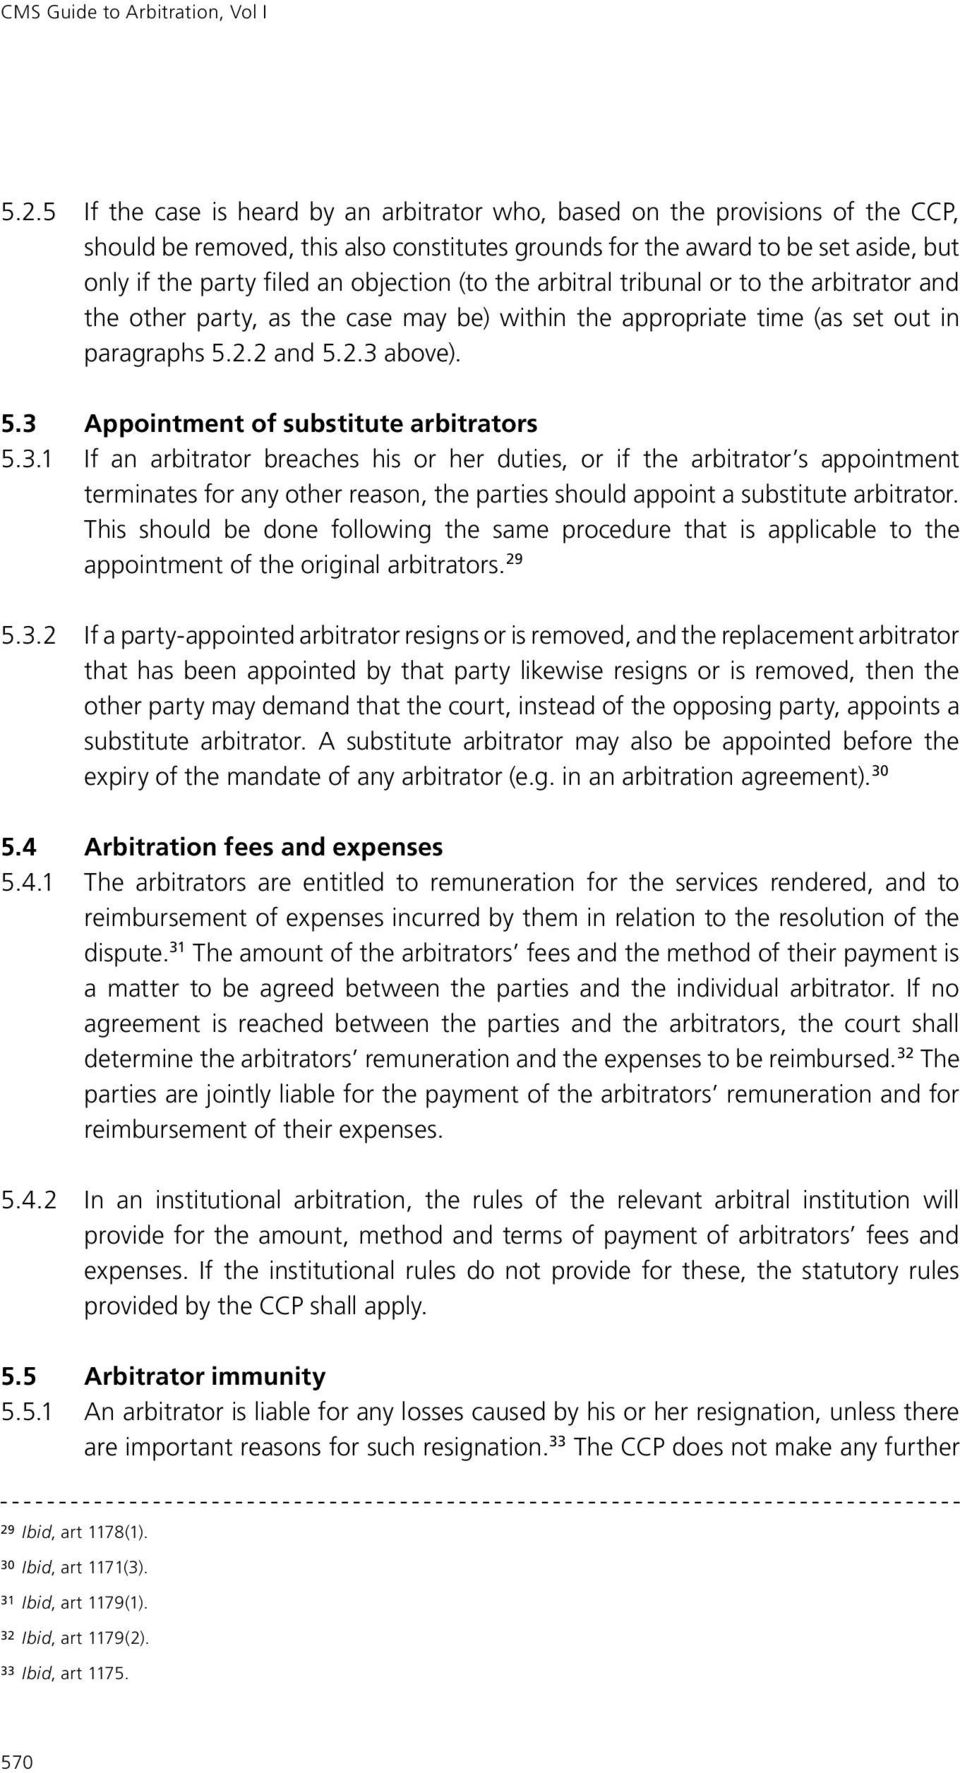 objection (to the arbitral tribunal or to the arbitrator and the other party, as the case may be) within the appropriate time (as set out in paragraphs 5.2.2 and 5.2.3 above). 5.3 Appointment of substitute arbitrators 5.